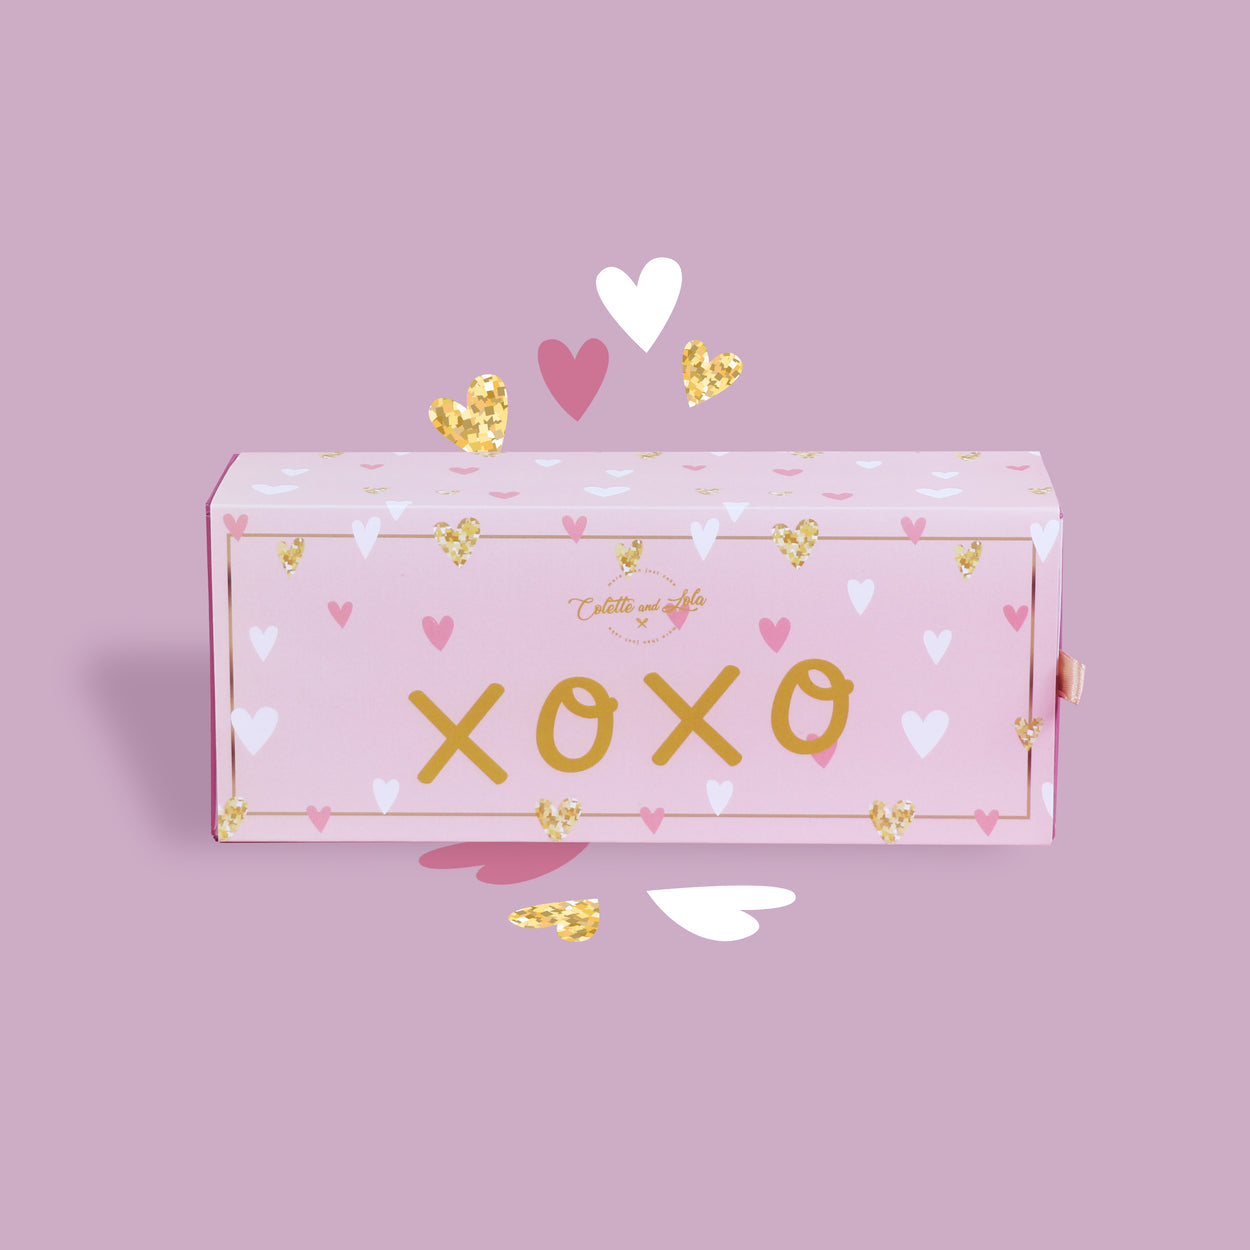 XOXO - Gift Box Sleeve